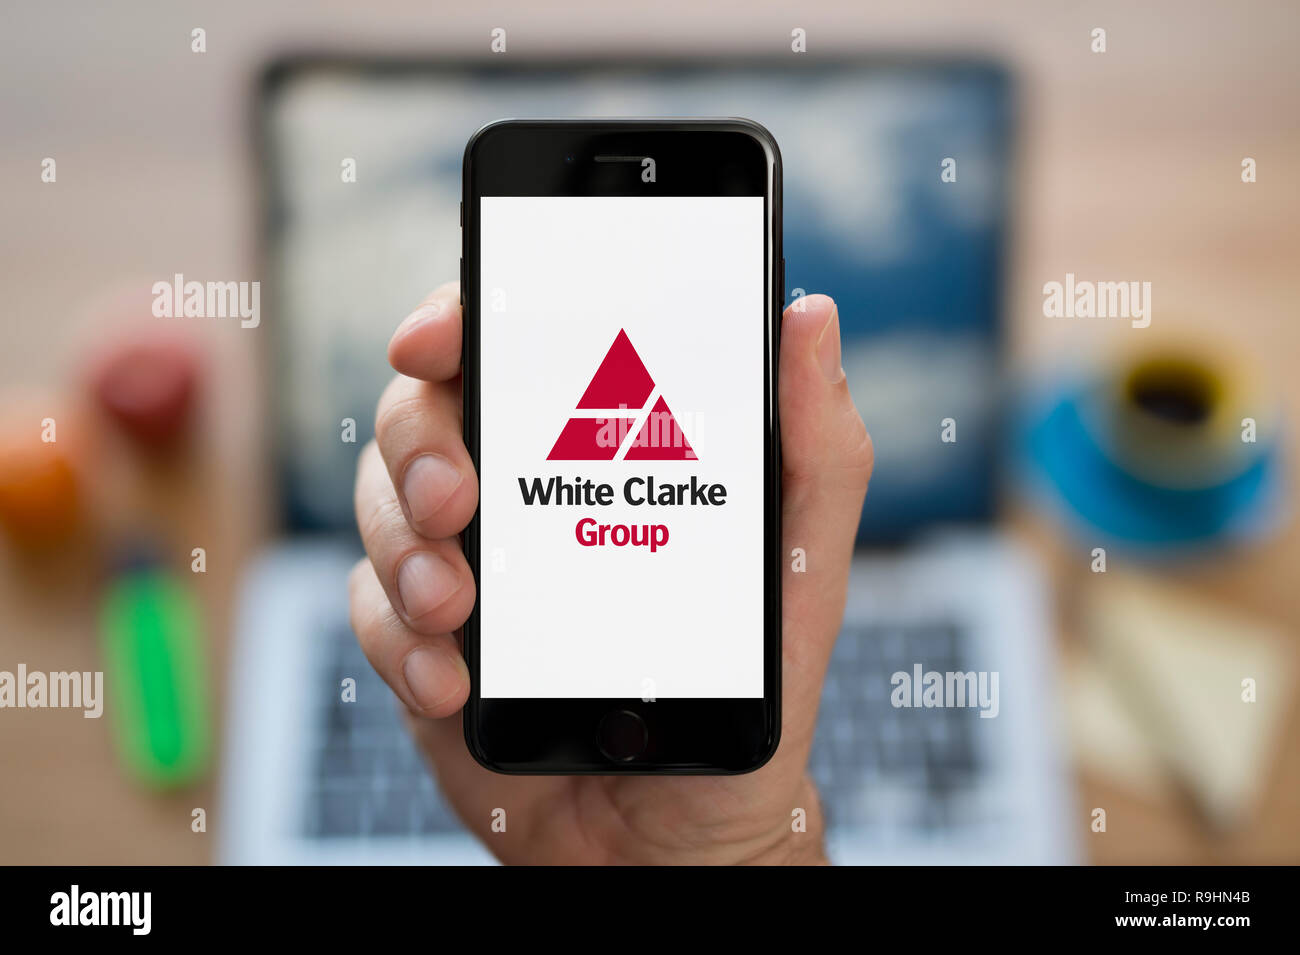 A man looks at his iPhone which displays the White Clarke Group logo (Editorial use only). - Stock Image